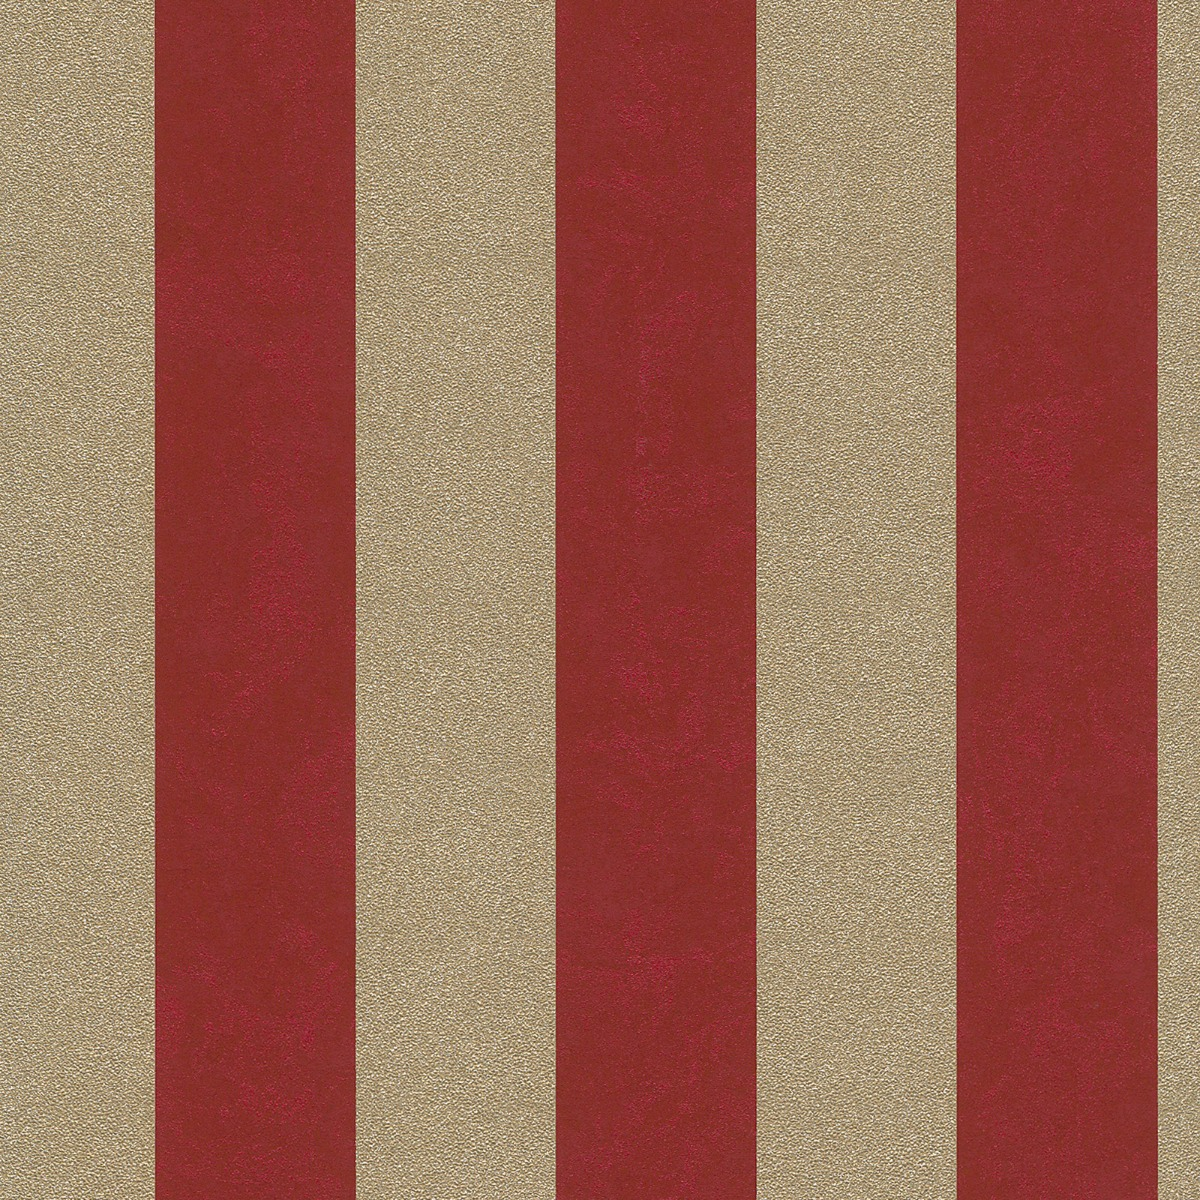 Carat Glitter Stripe Wallpaper Red and Gold